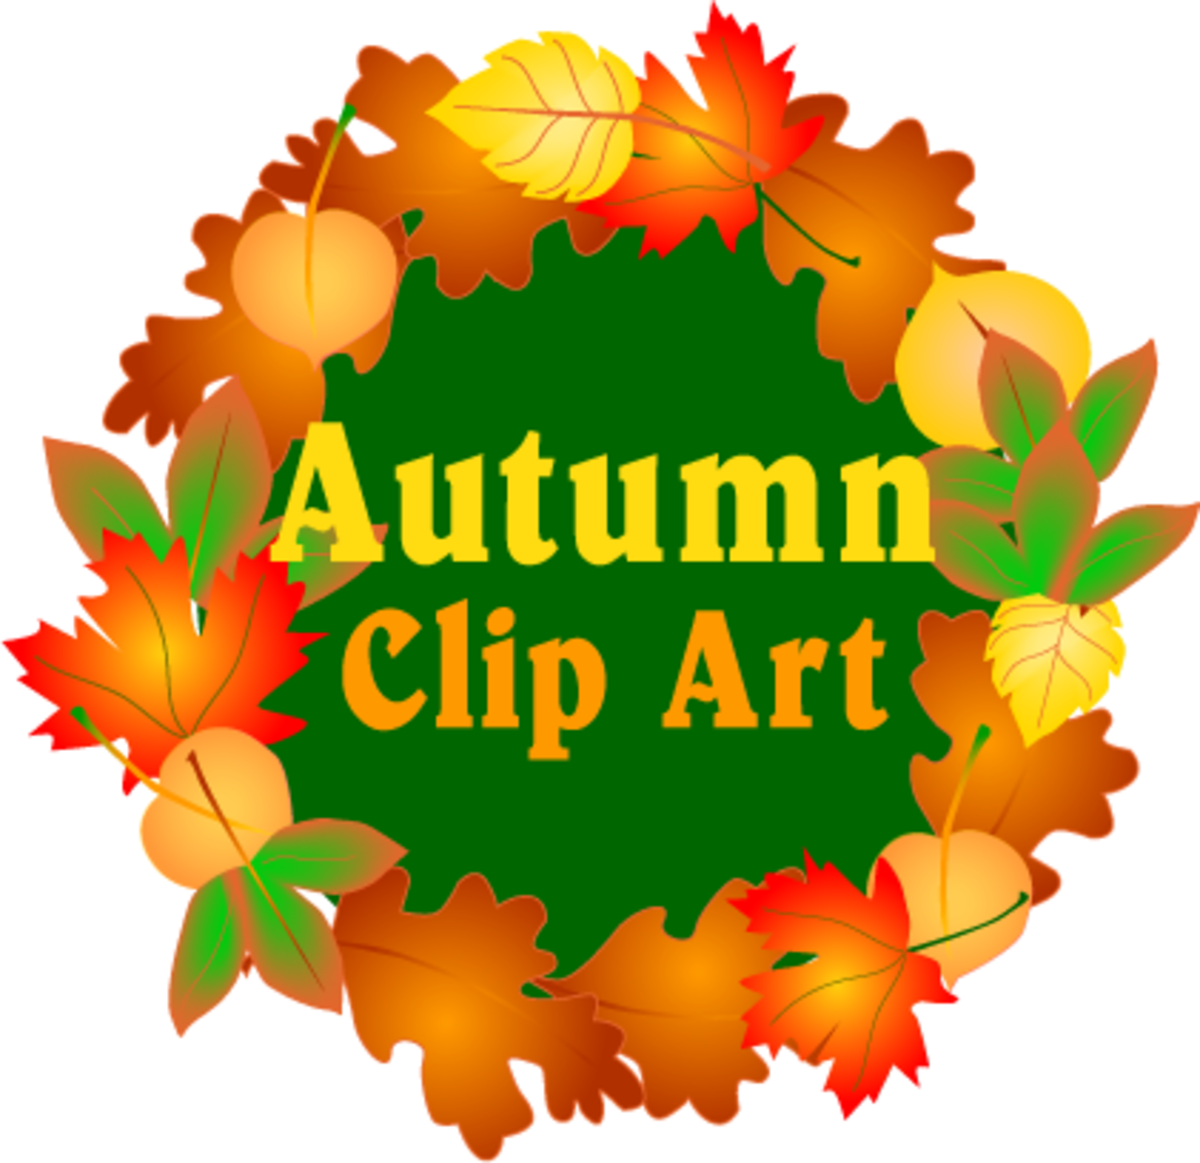 Autumn Clip Art - Fall Season Graphics | hubpages